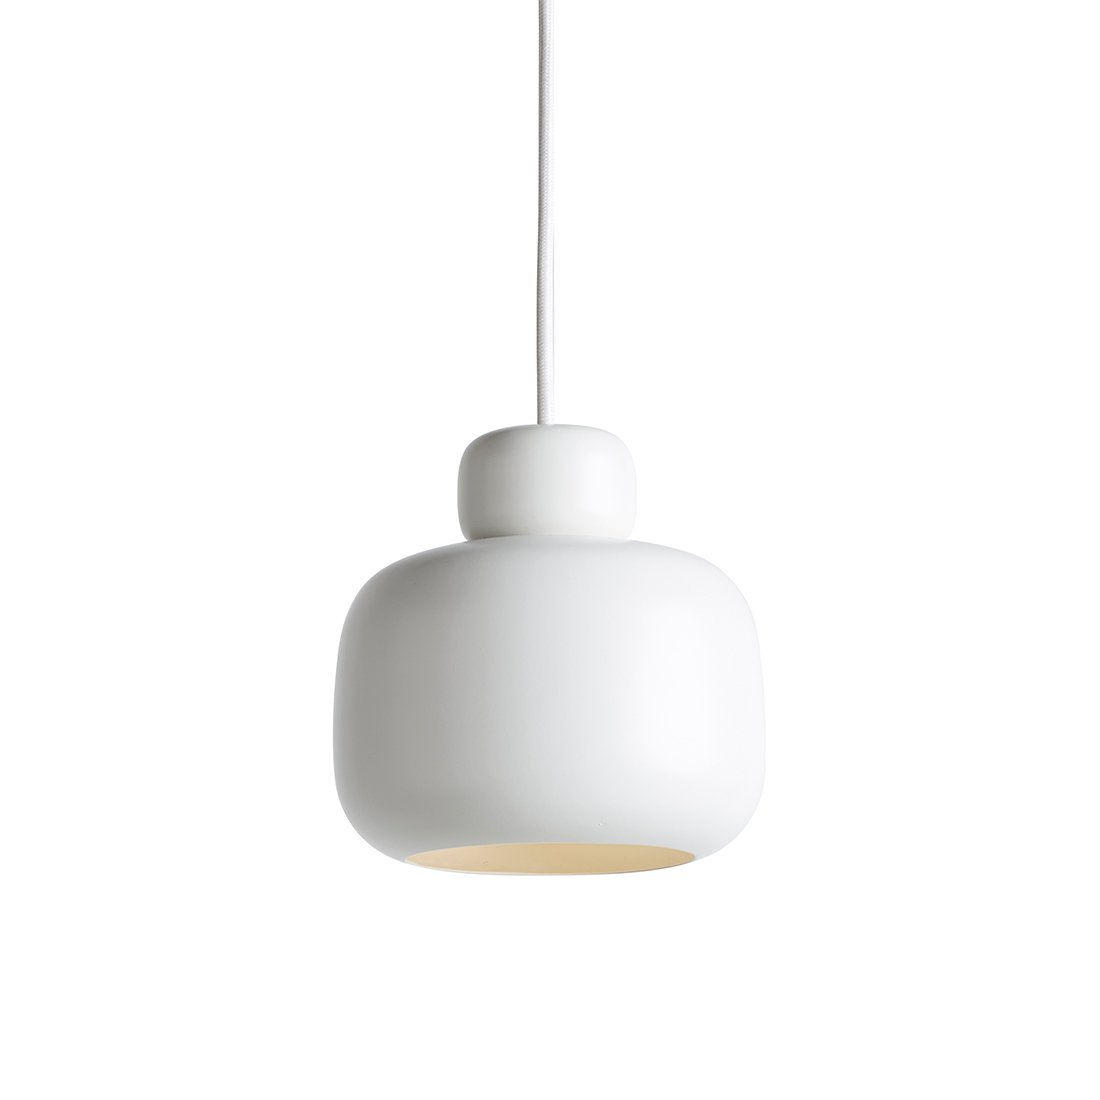 WOUD Stone Small Hanglamp Wit